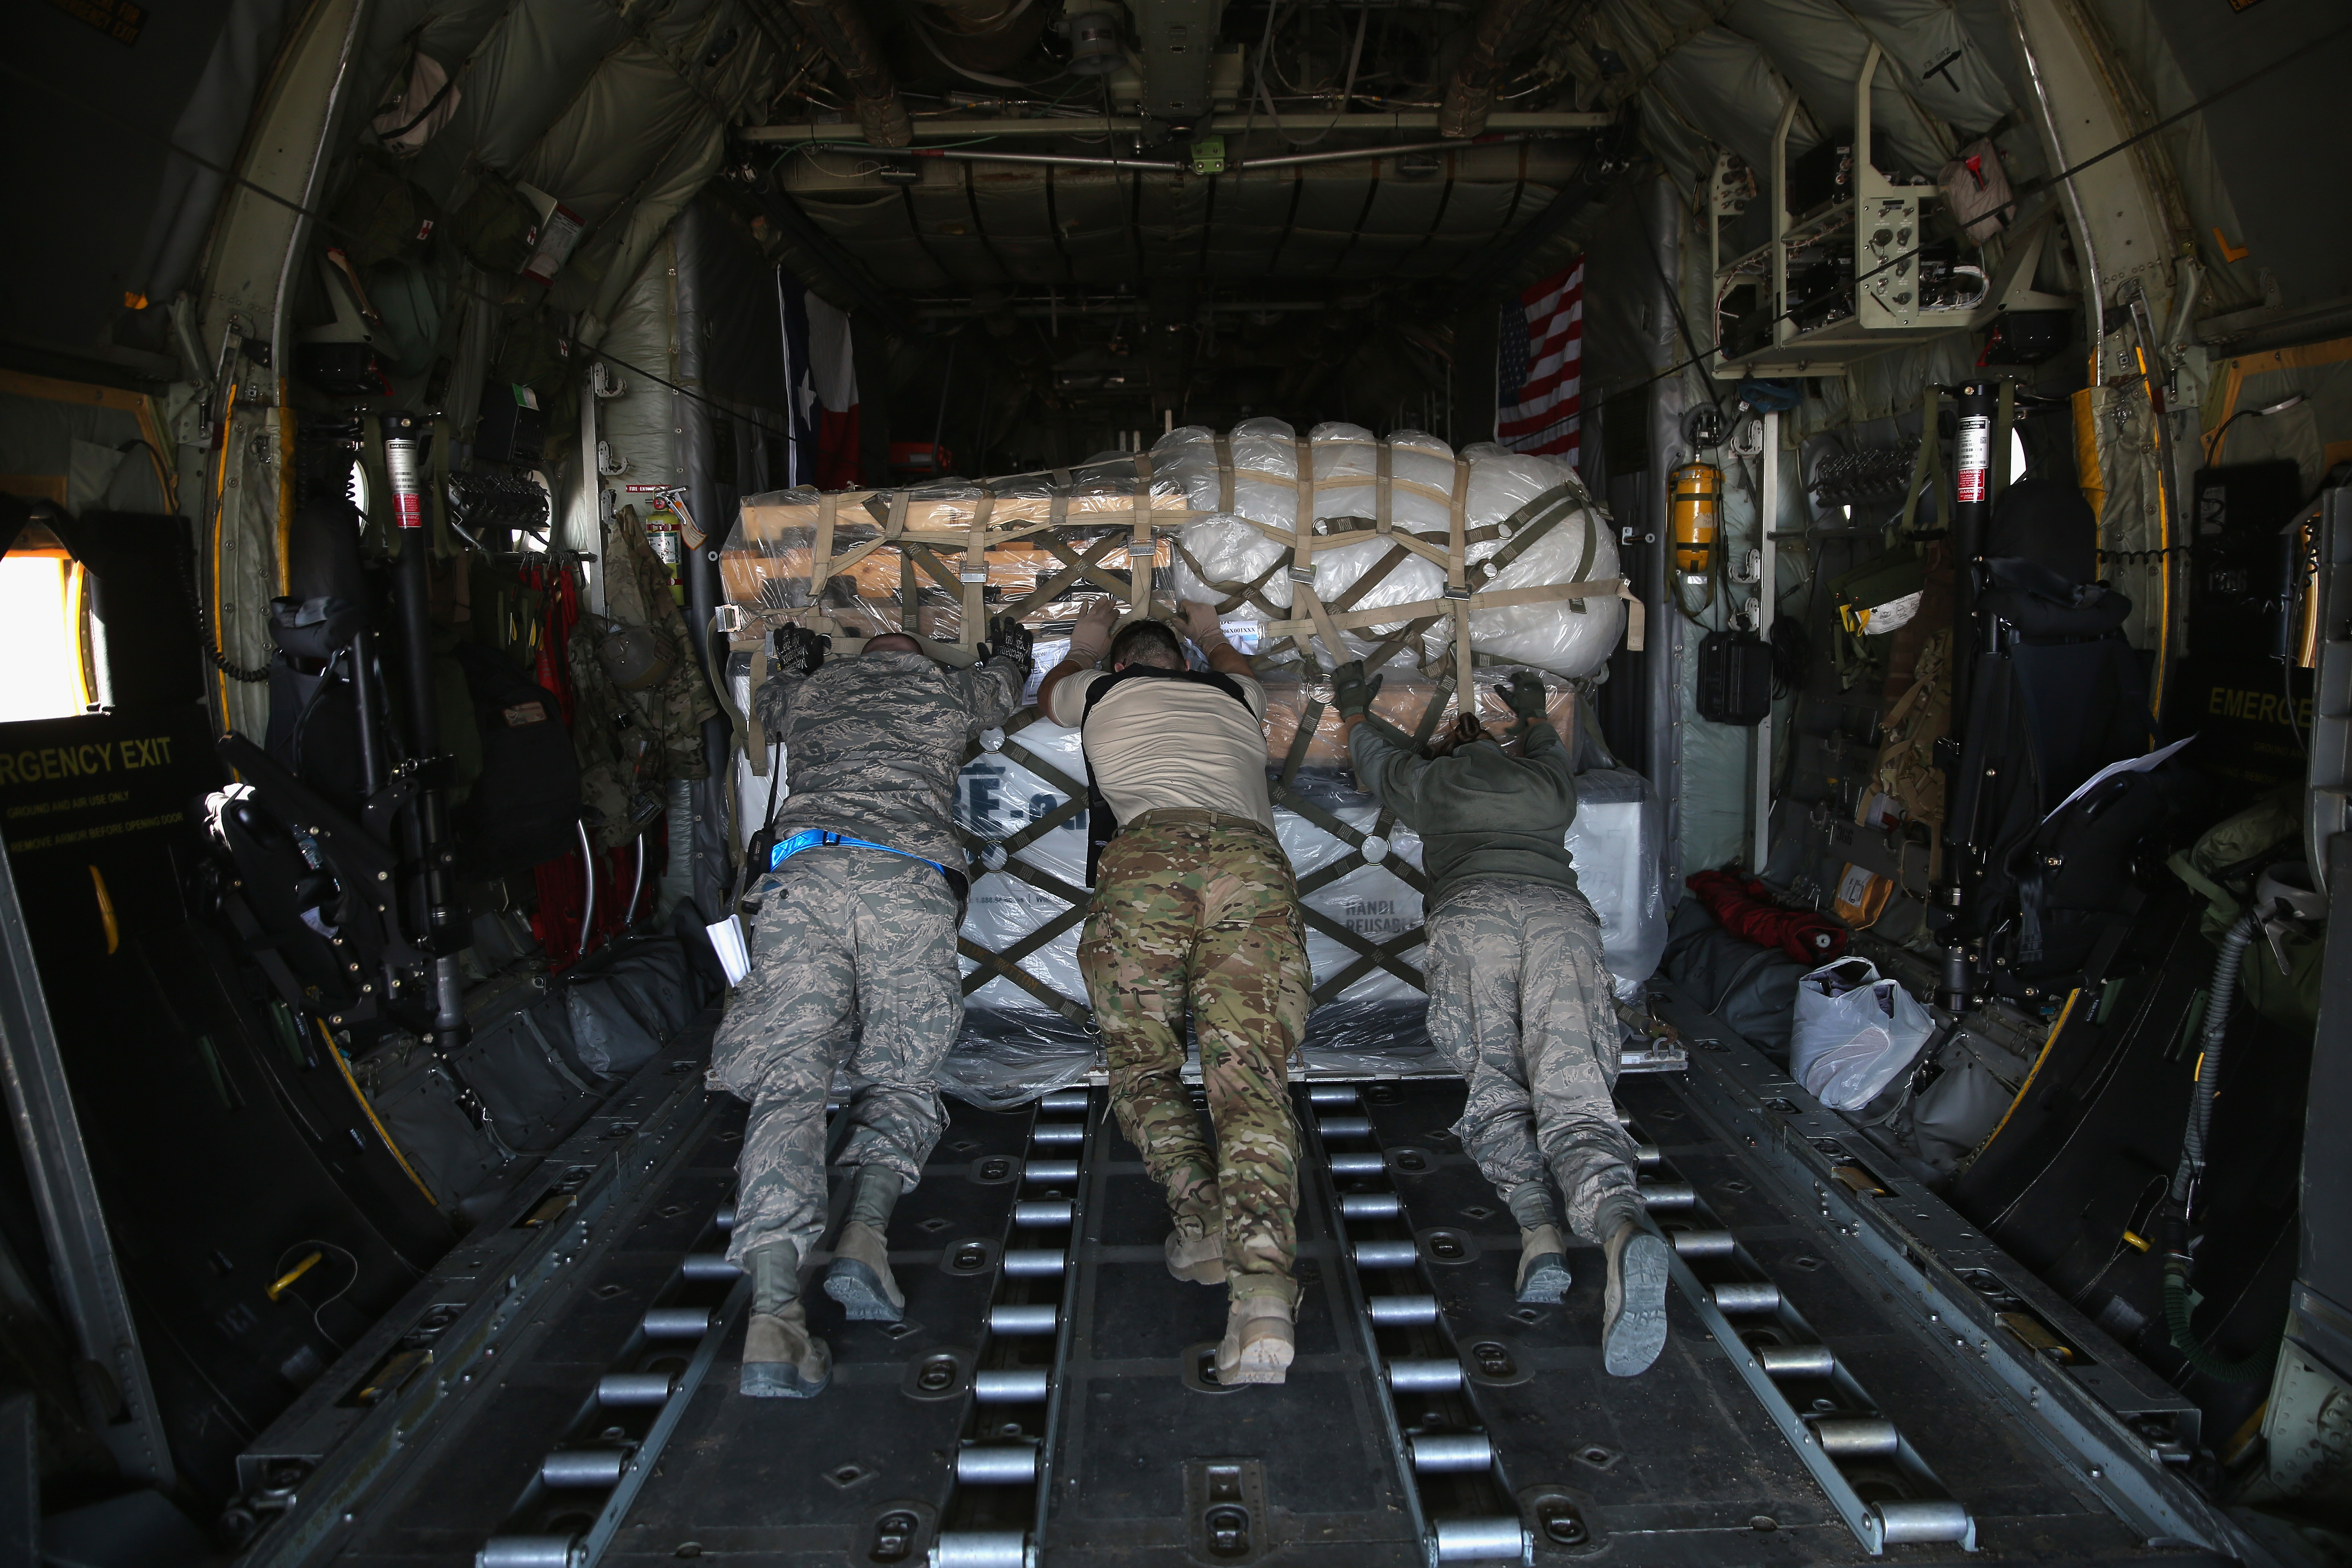 U.S. Air Force service members push cargo onto a Texas Air National Guard C-130 cargo plane bound for Iraq on January 10, 2016 from a base in an undisclosed location in the Persian Gulf Region. (Photo by John Moore/Getty Images)